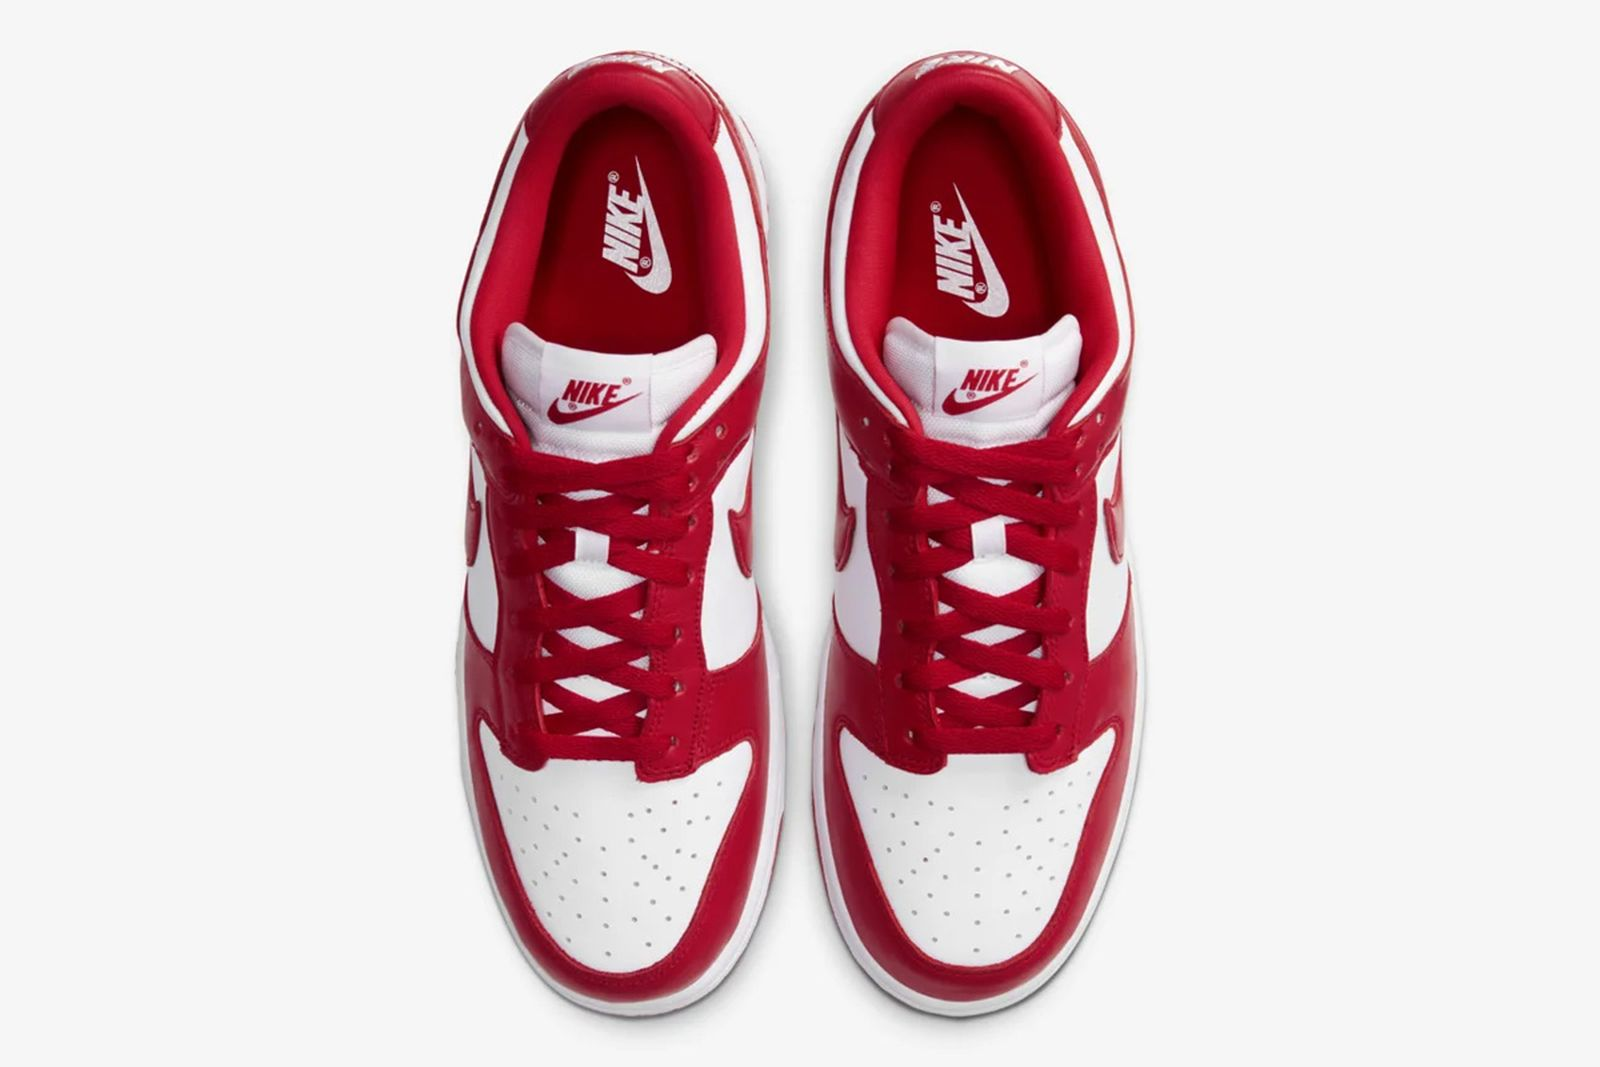 Red and white Nike Dunk Low top down view